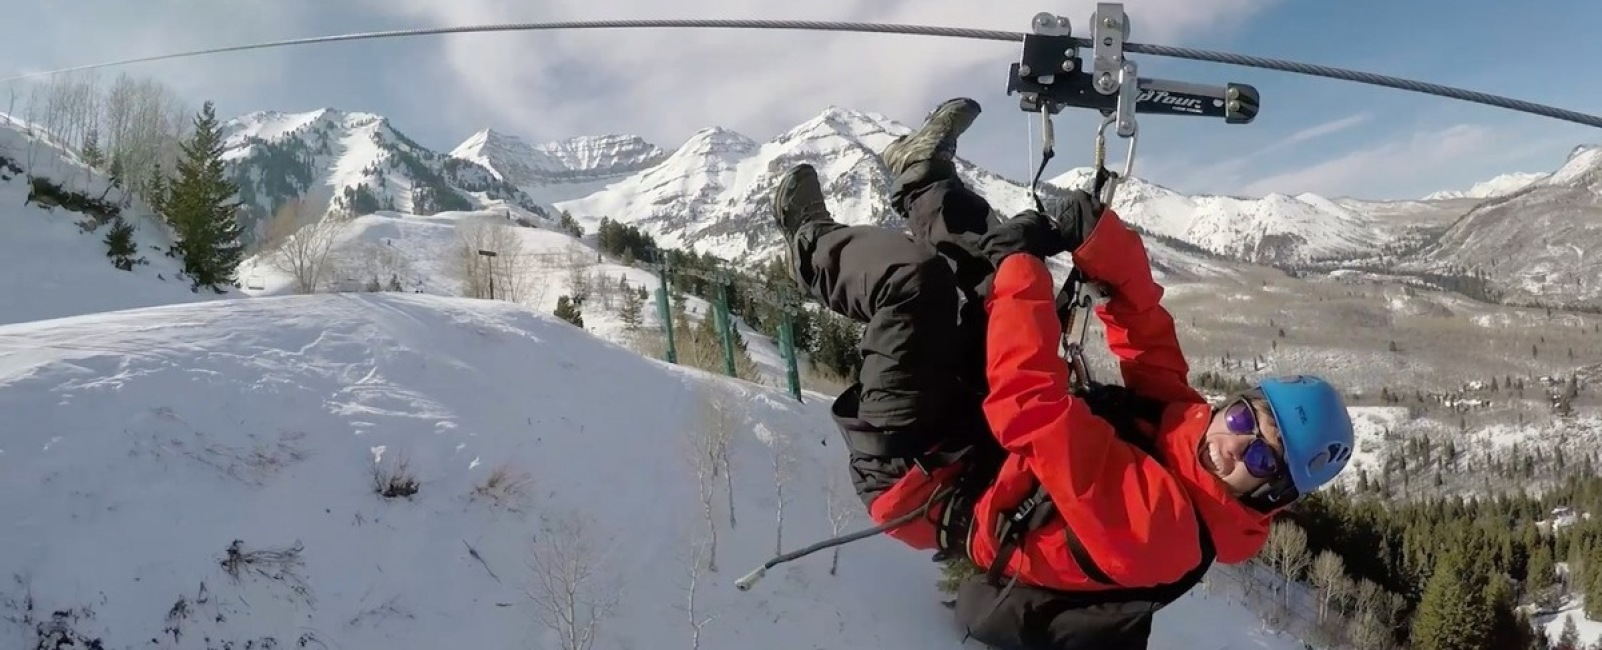 the sundance zip line - ski utah